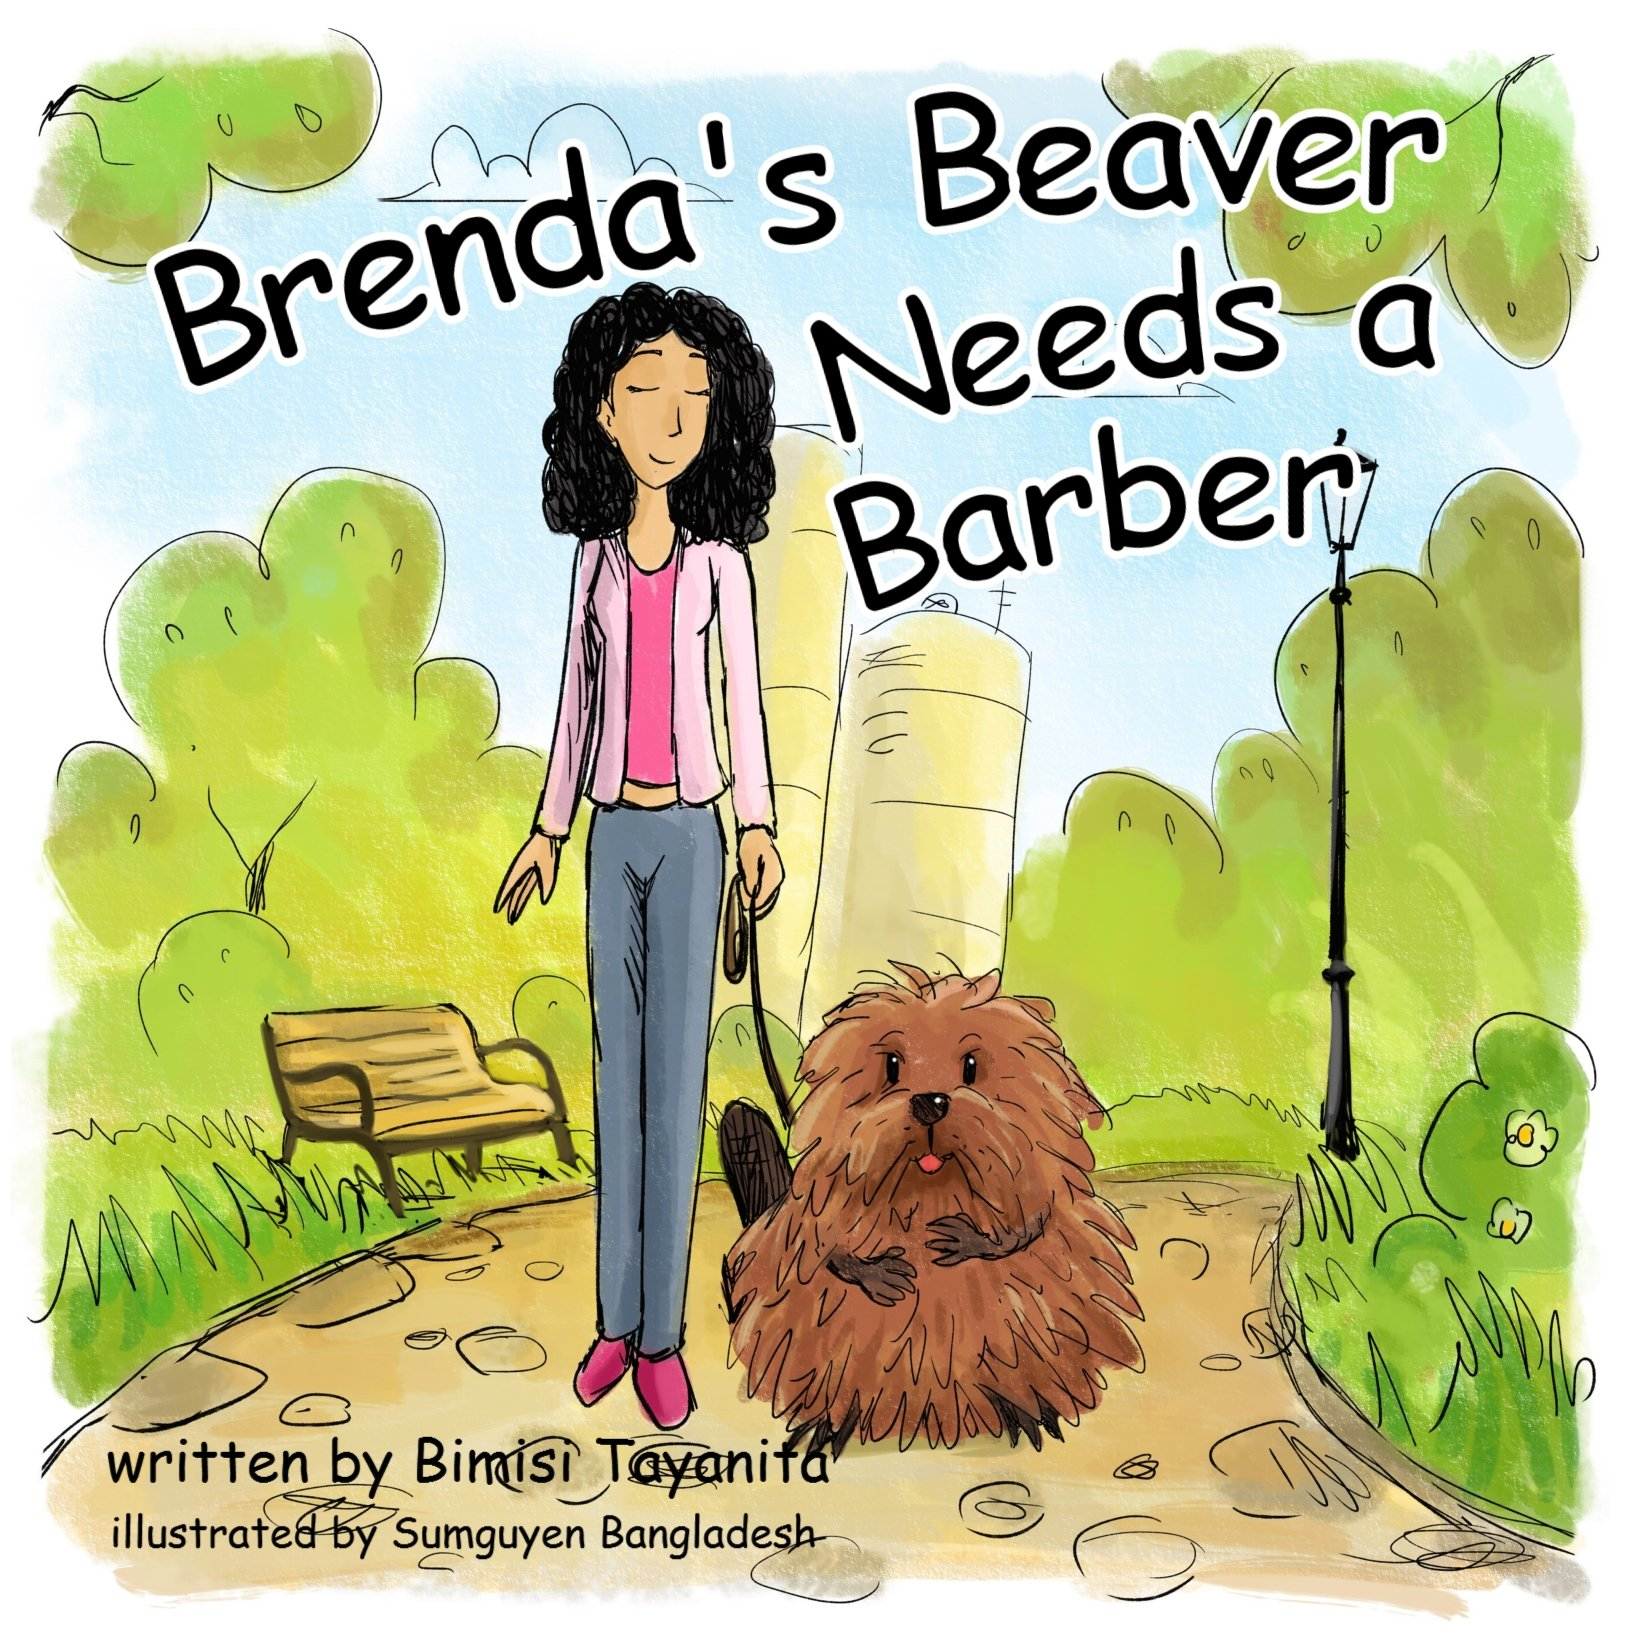 brenda's beaver needs a barber book cover with woman holding leash on a beaver